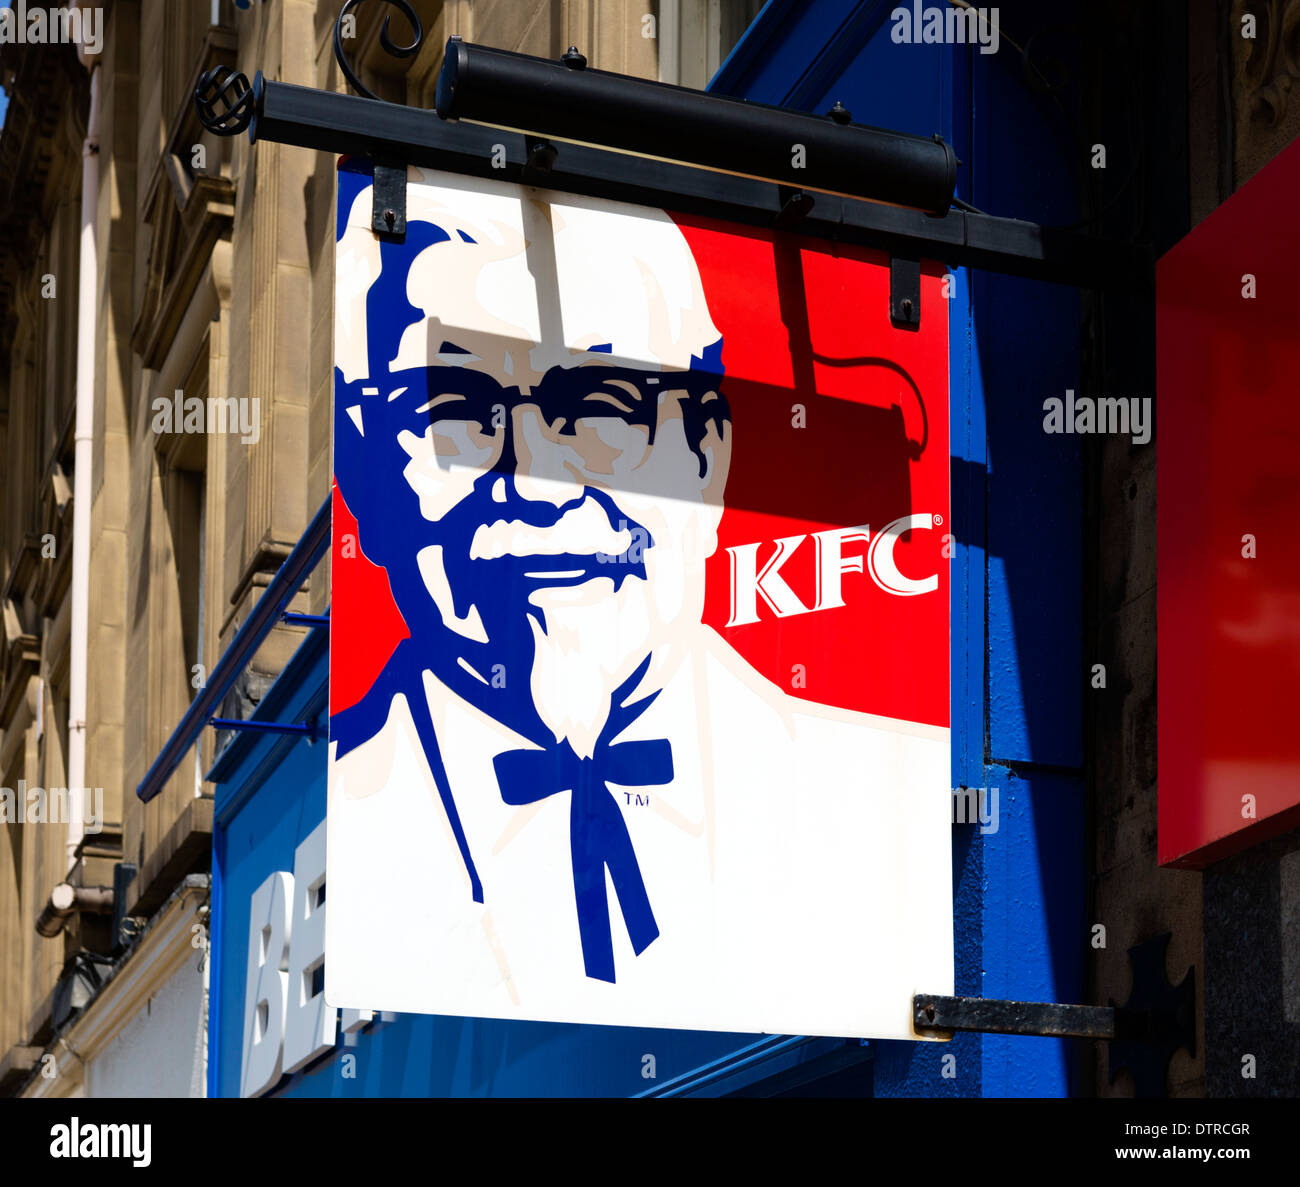 KFC restaurant in the town centre, Huddersfield, West Yorkshire, England, UK - Stock Image